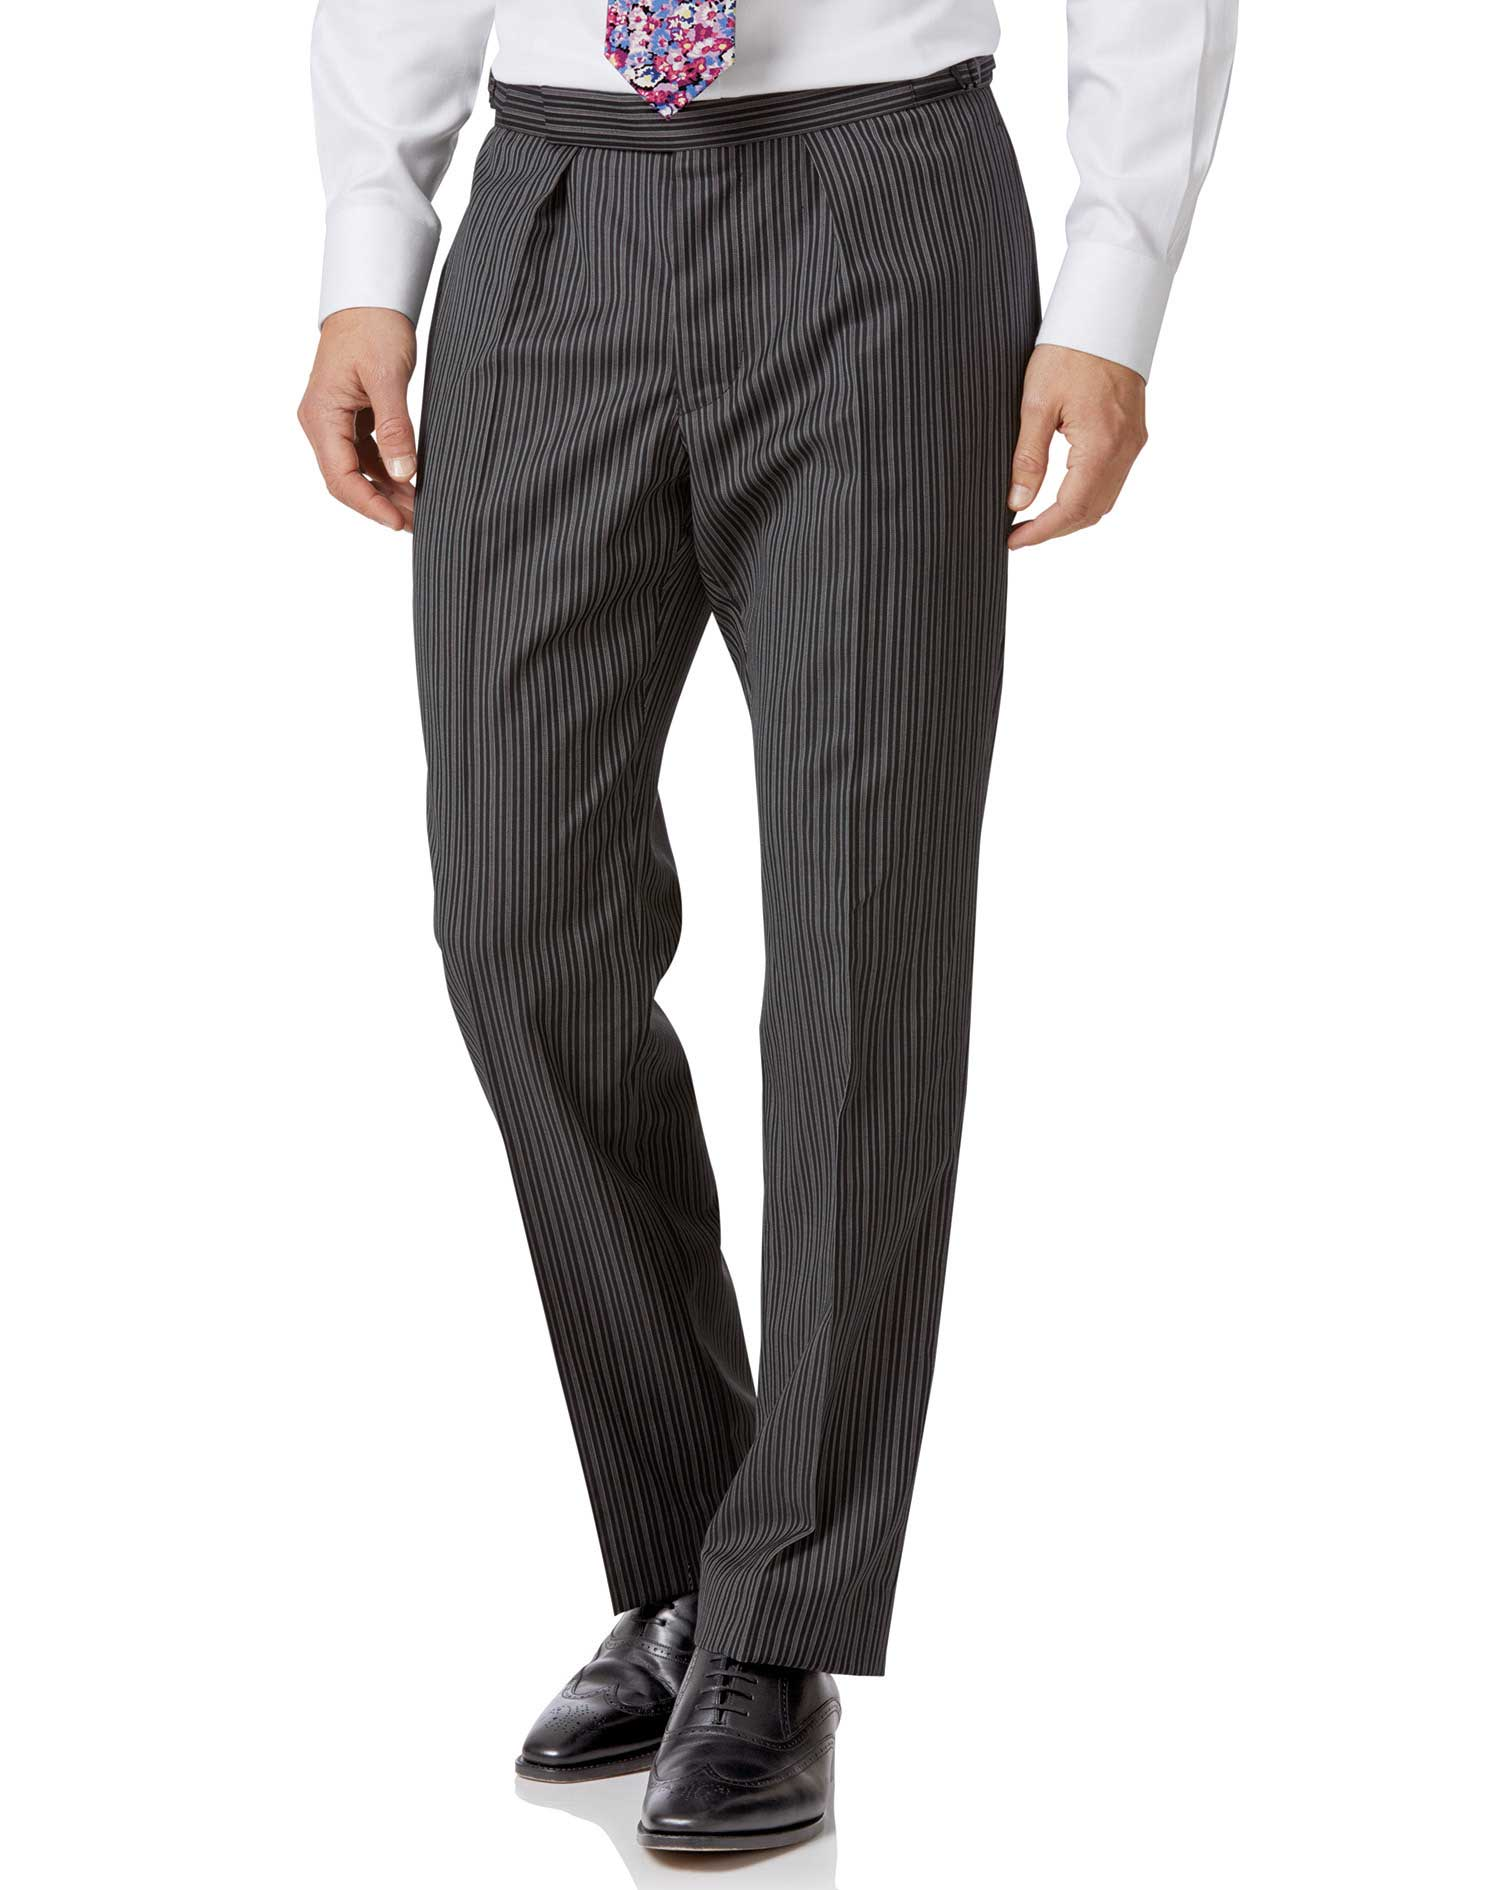 Black Stripe Classic Fit Morning Suit Trousers Size 38/34 by Charles Tyrwhitt